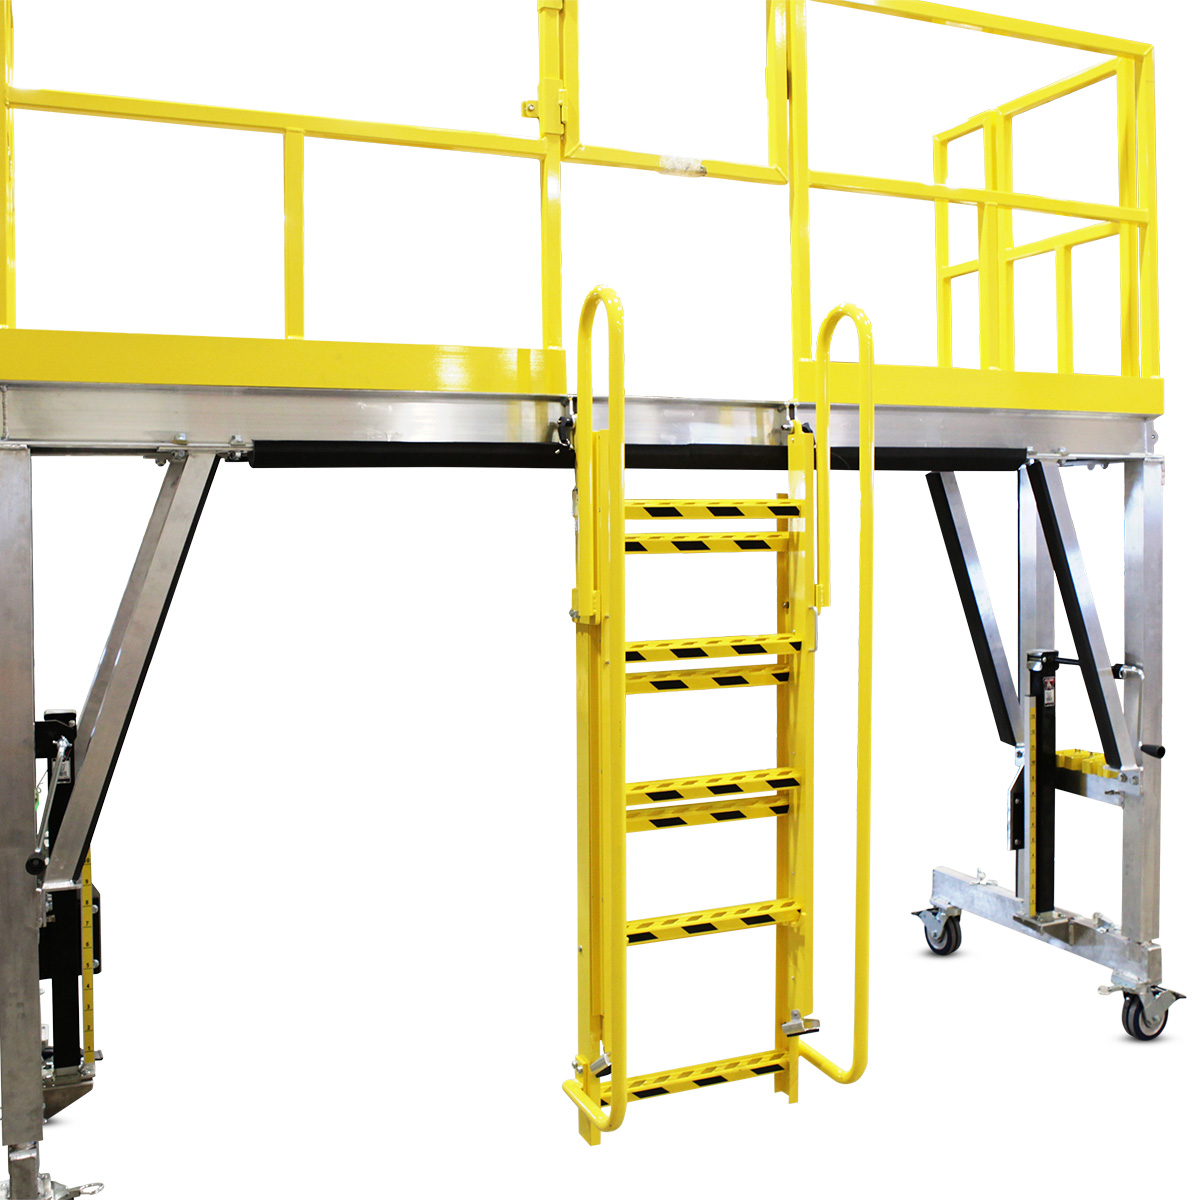 Custom OSHA complaint, mobile, height-adjustable aluminum work stand with cantilever deck extensions and stowaway ladders.